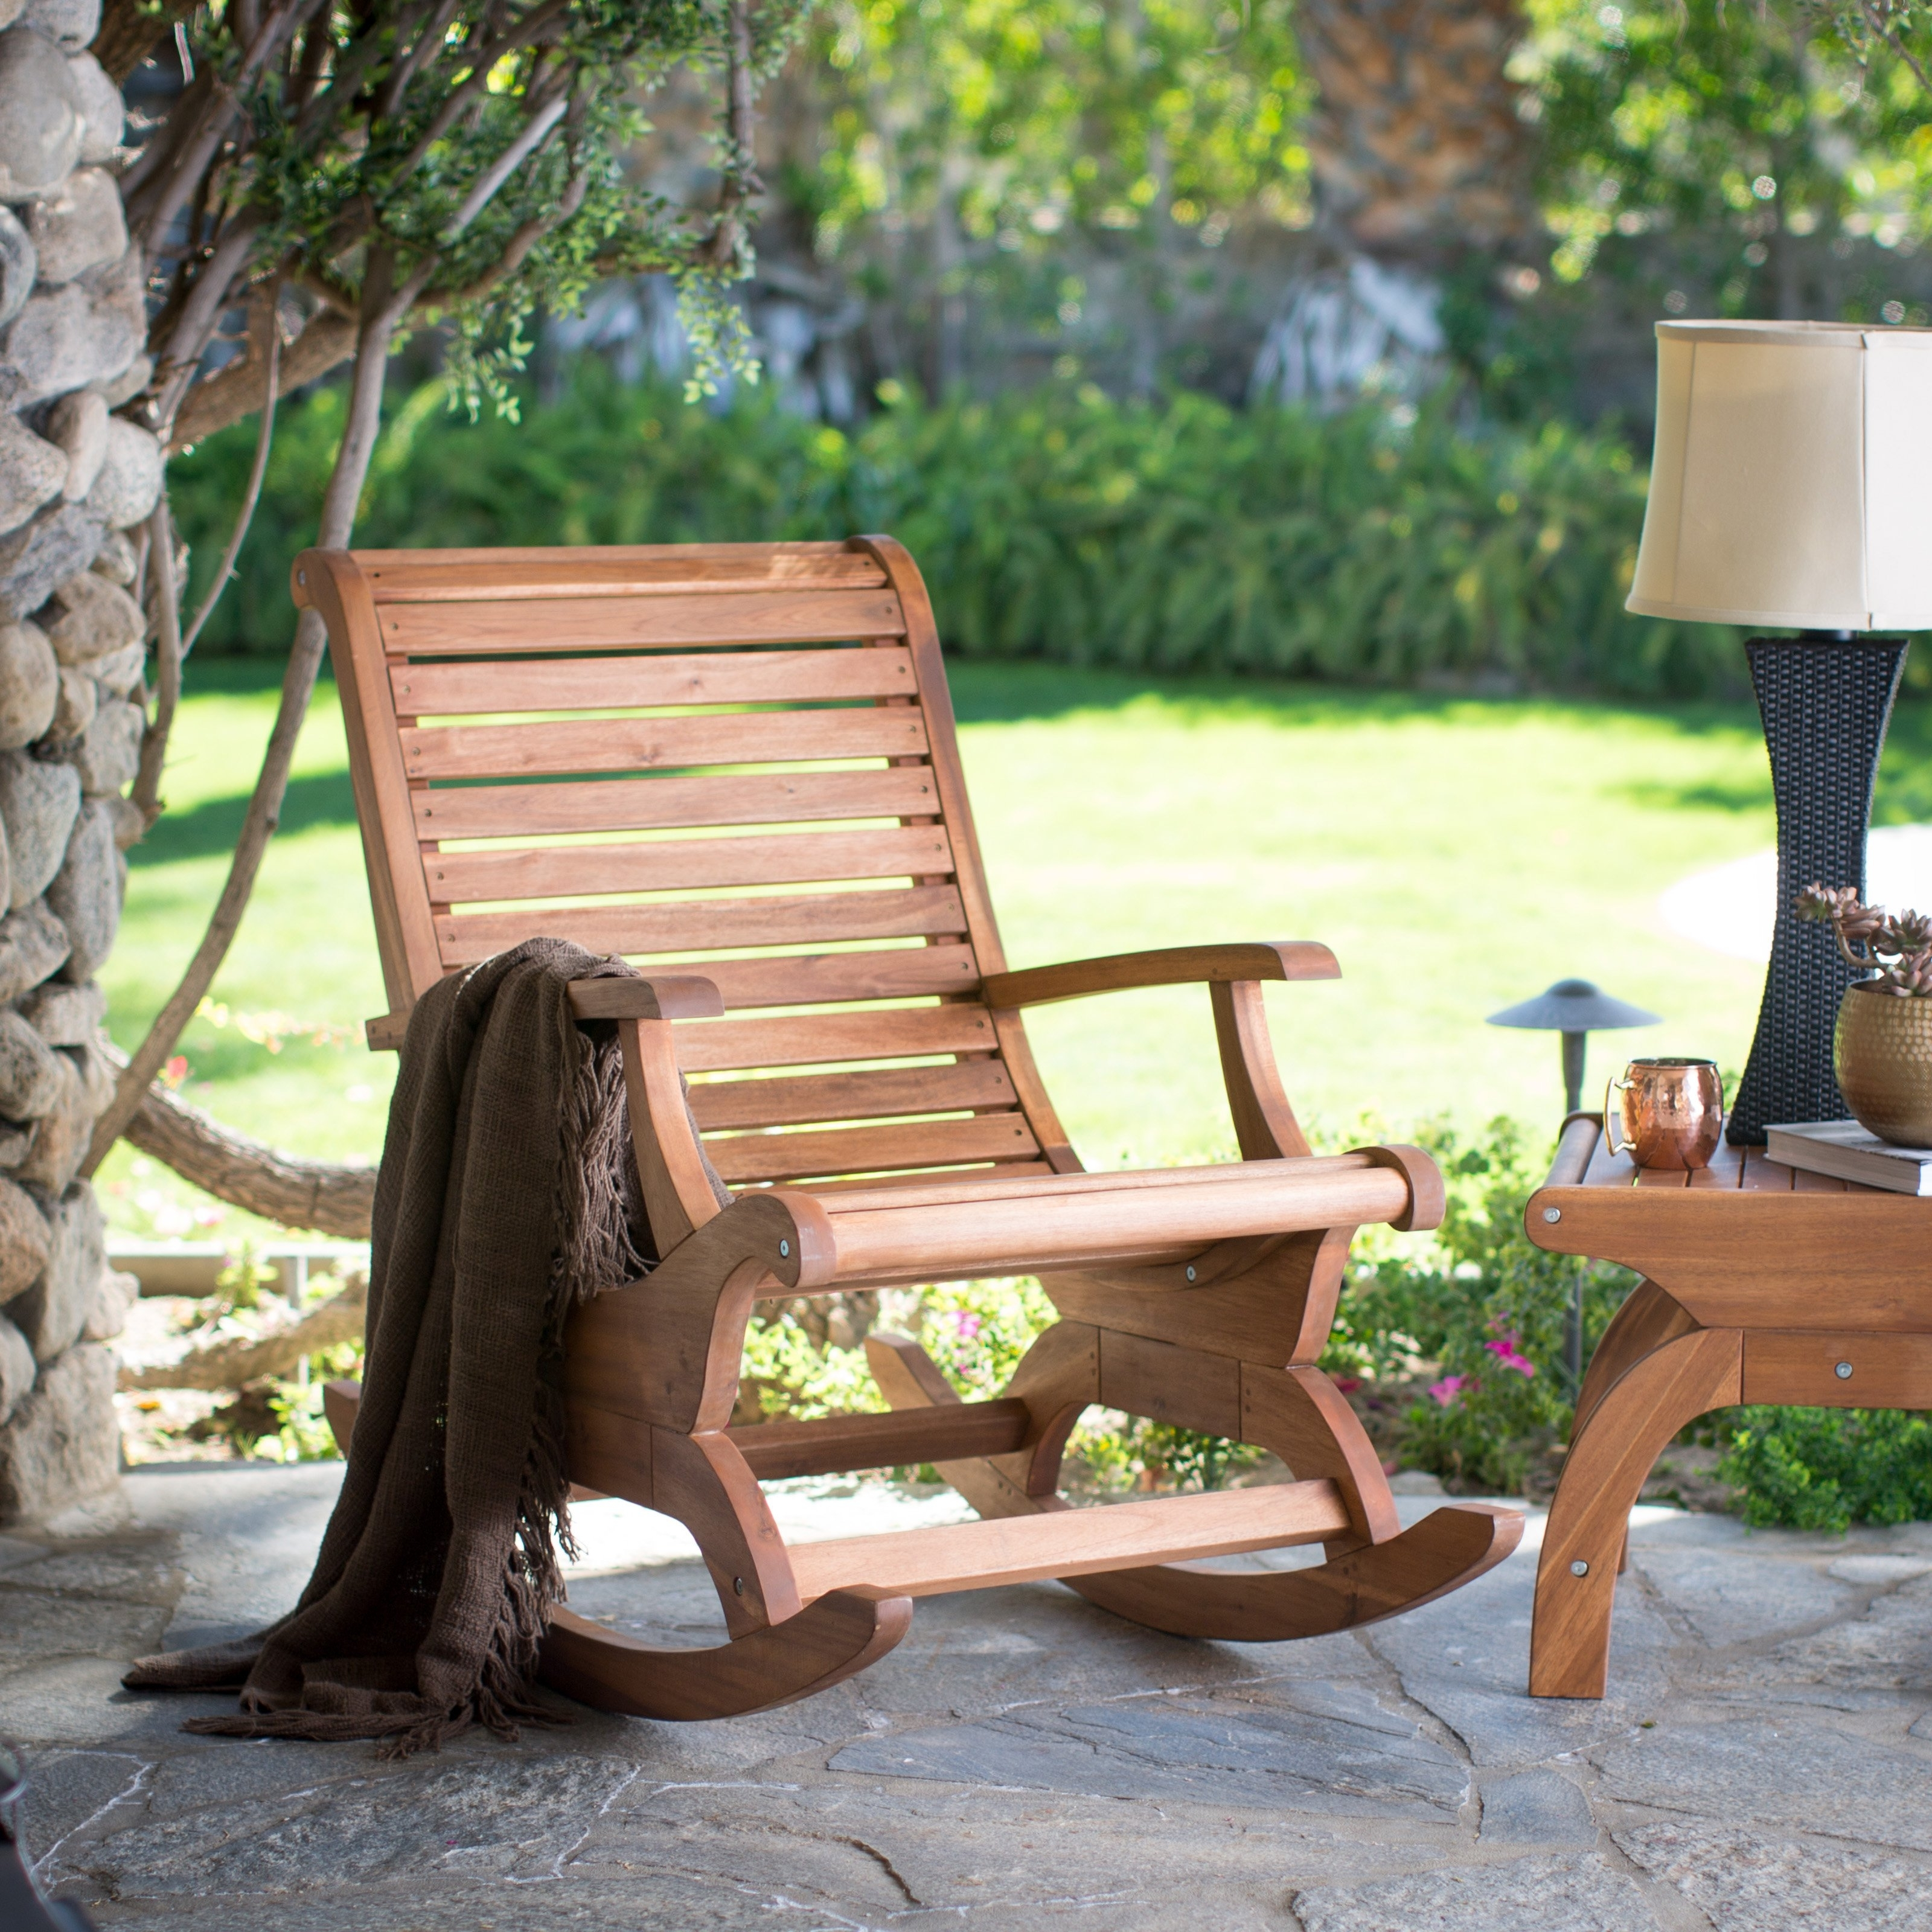 Rocking Chairs For Outside Pertaining To Trendy Belham Living Avondale Oversized Outdoor Rocking Chair – Natural (View 4 of 20)